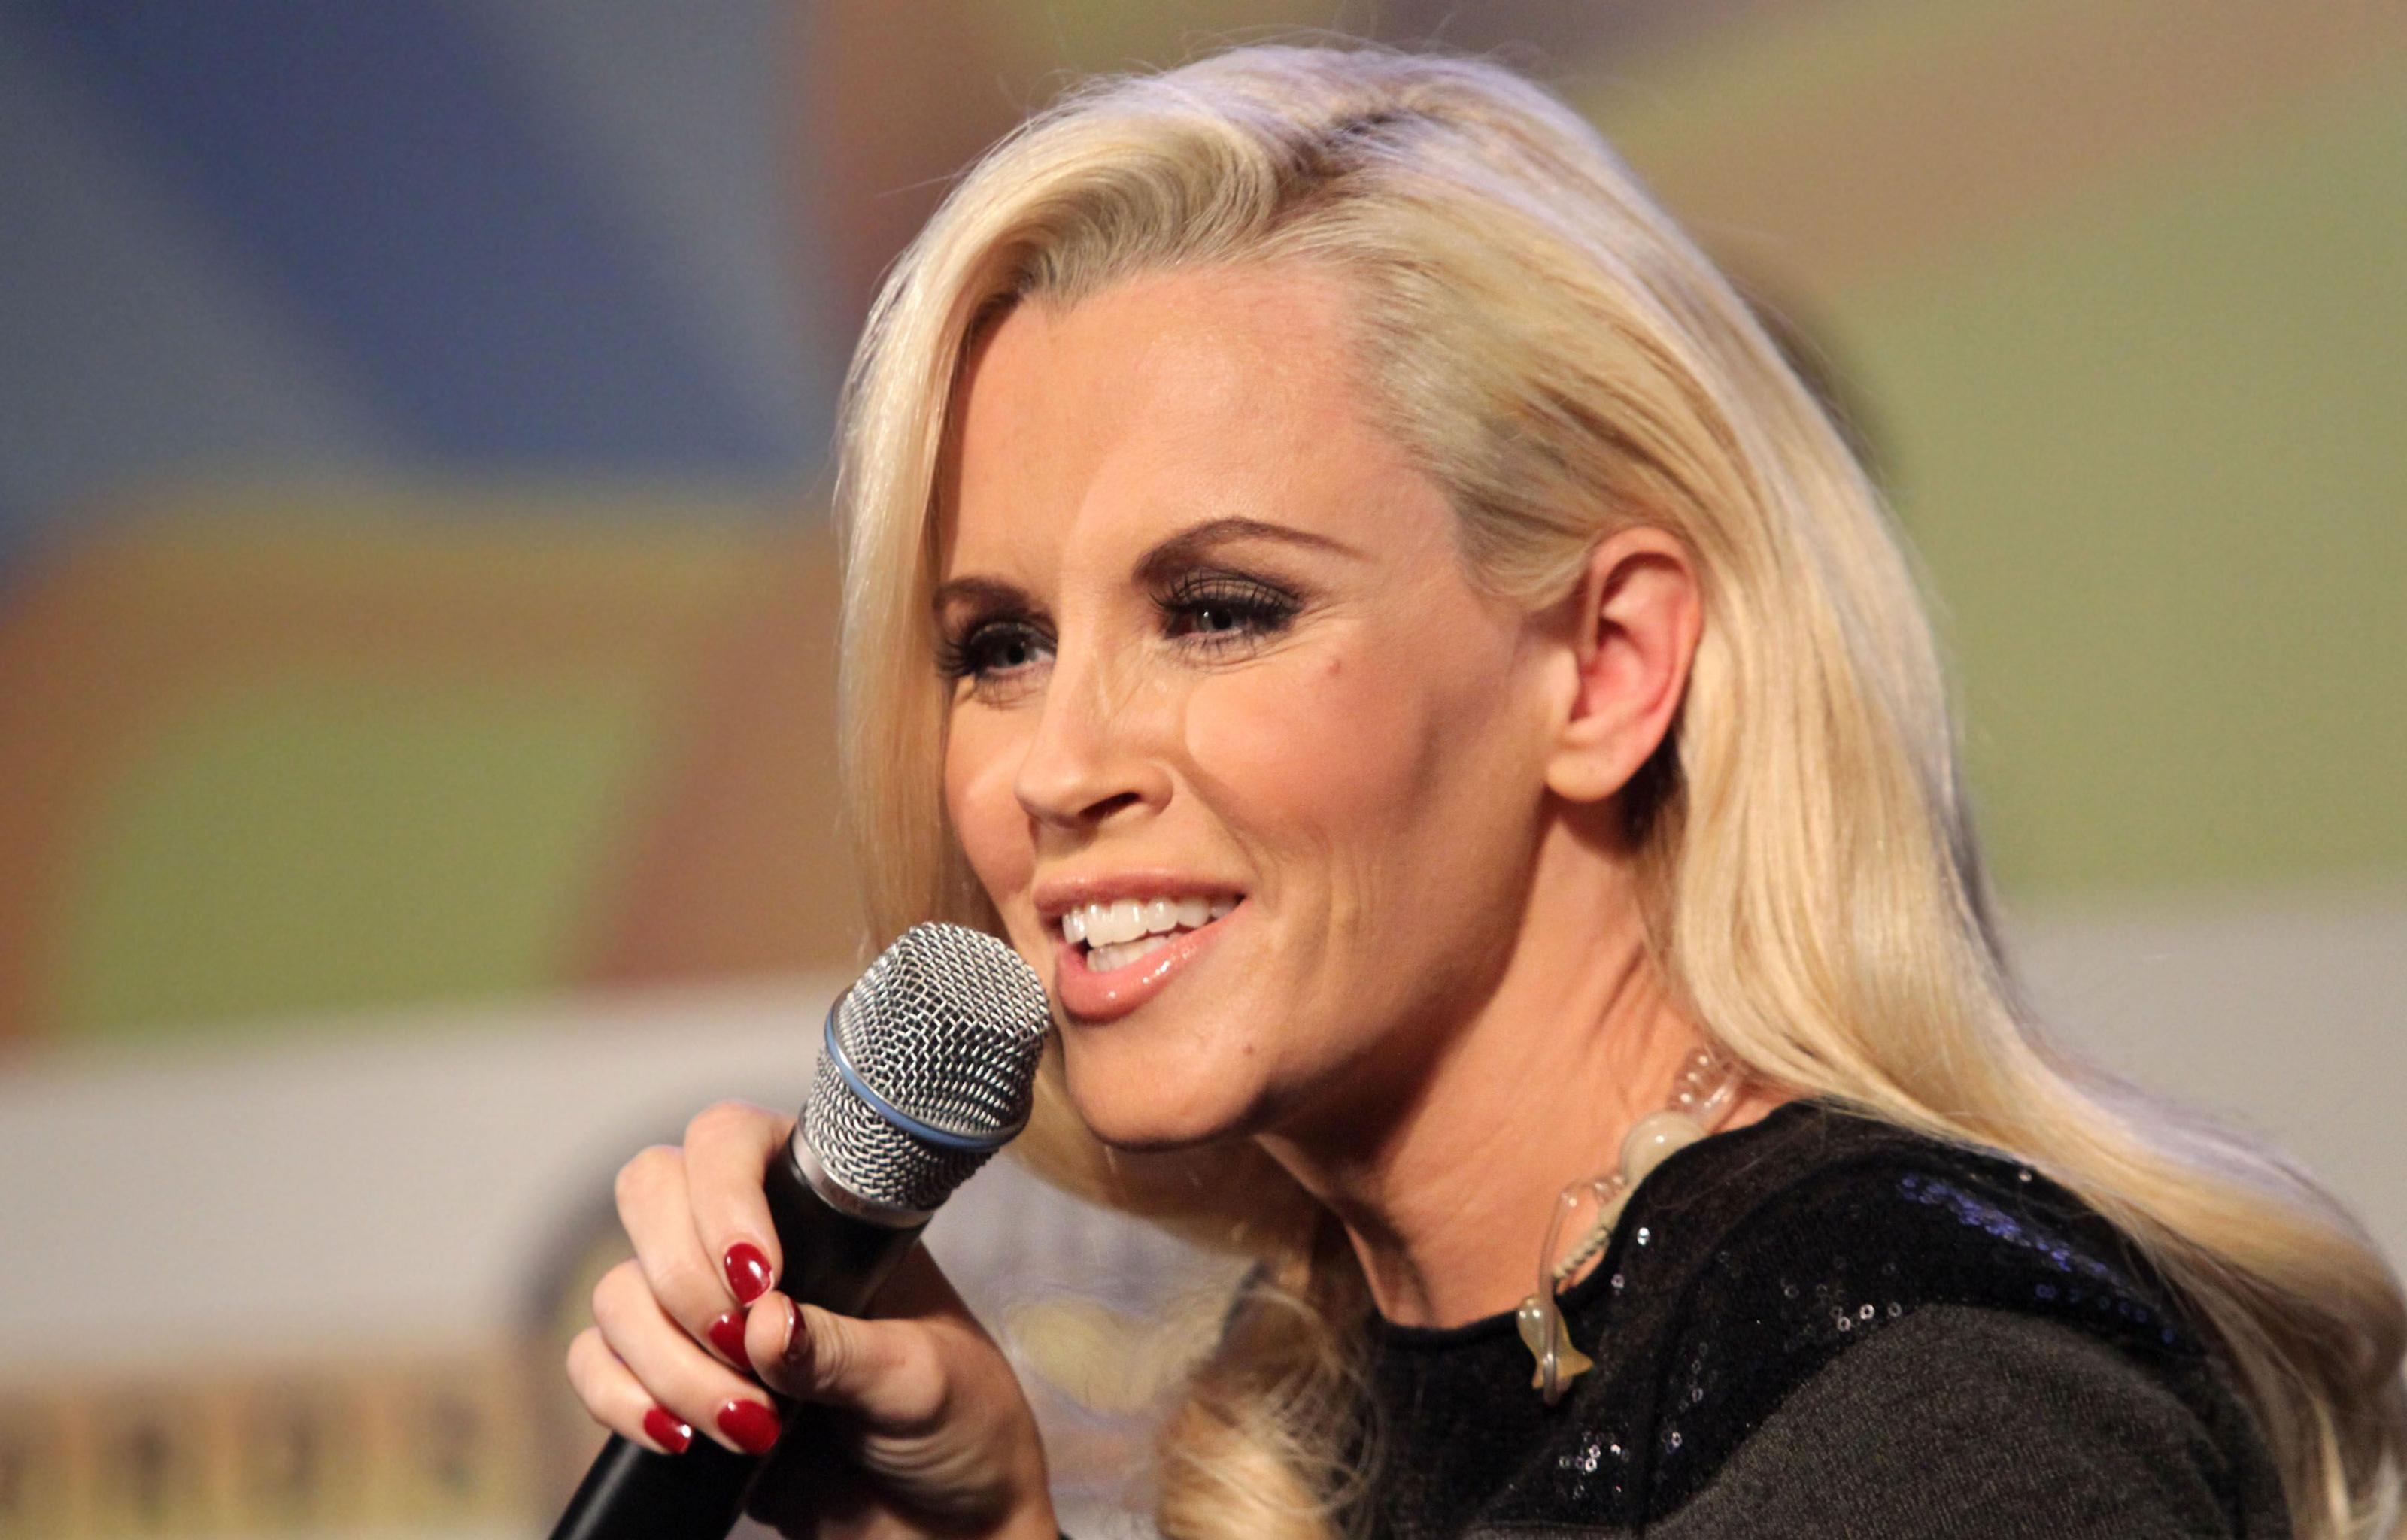 High resolution Jenny Mccarthy hd 3200x2048 background ID:40476 for PC